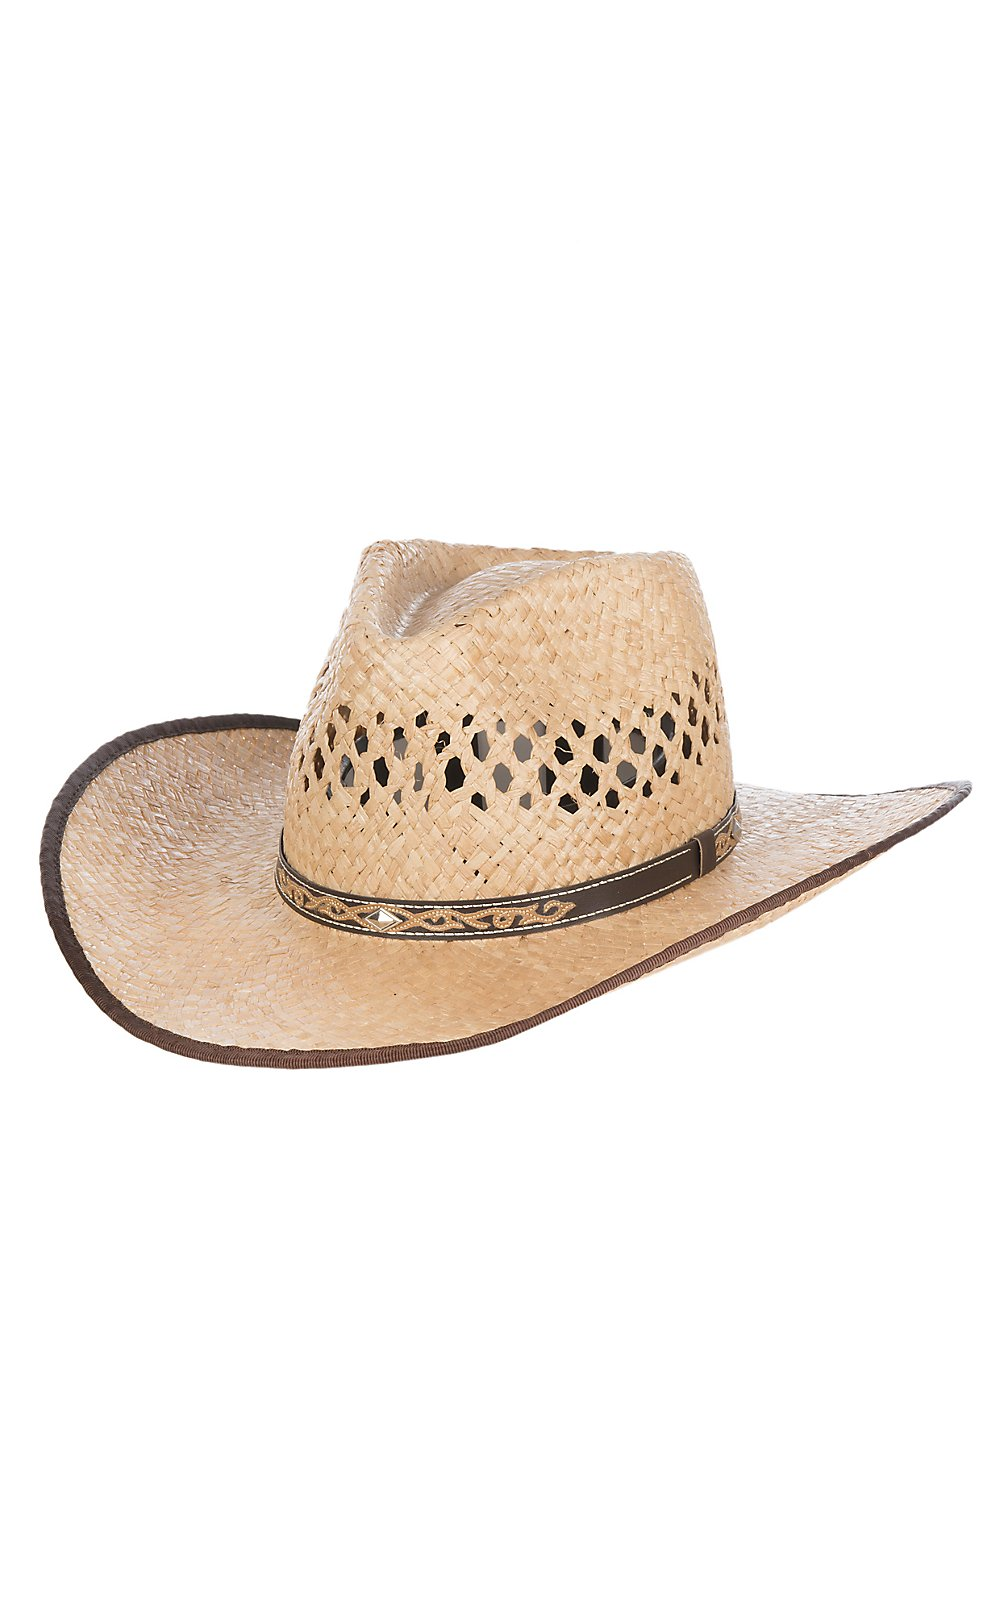 4953e54a458 Scala by Dorfman Pacific Tan Vented Straw Fashion Cowboy Hat S M ...